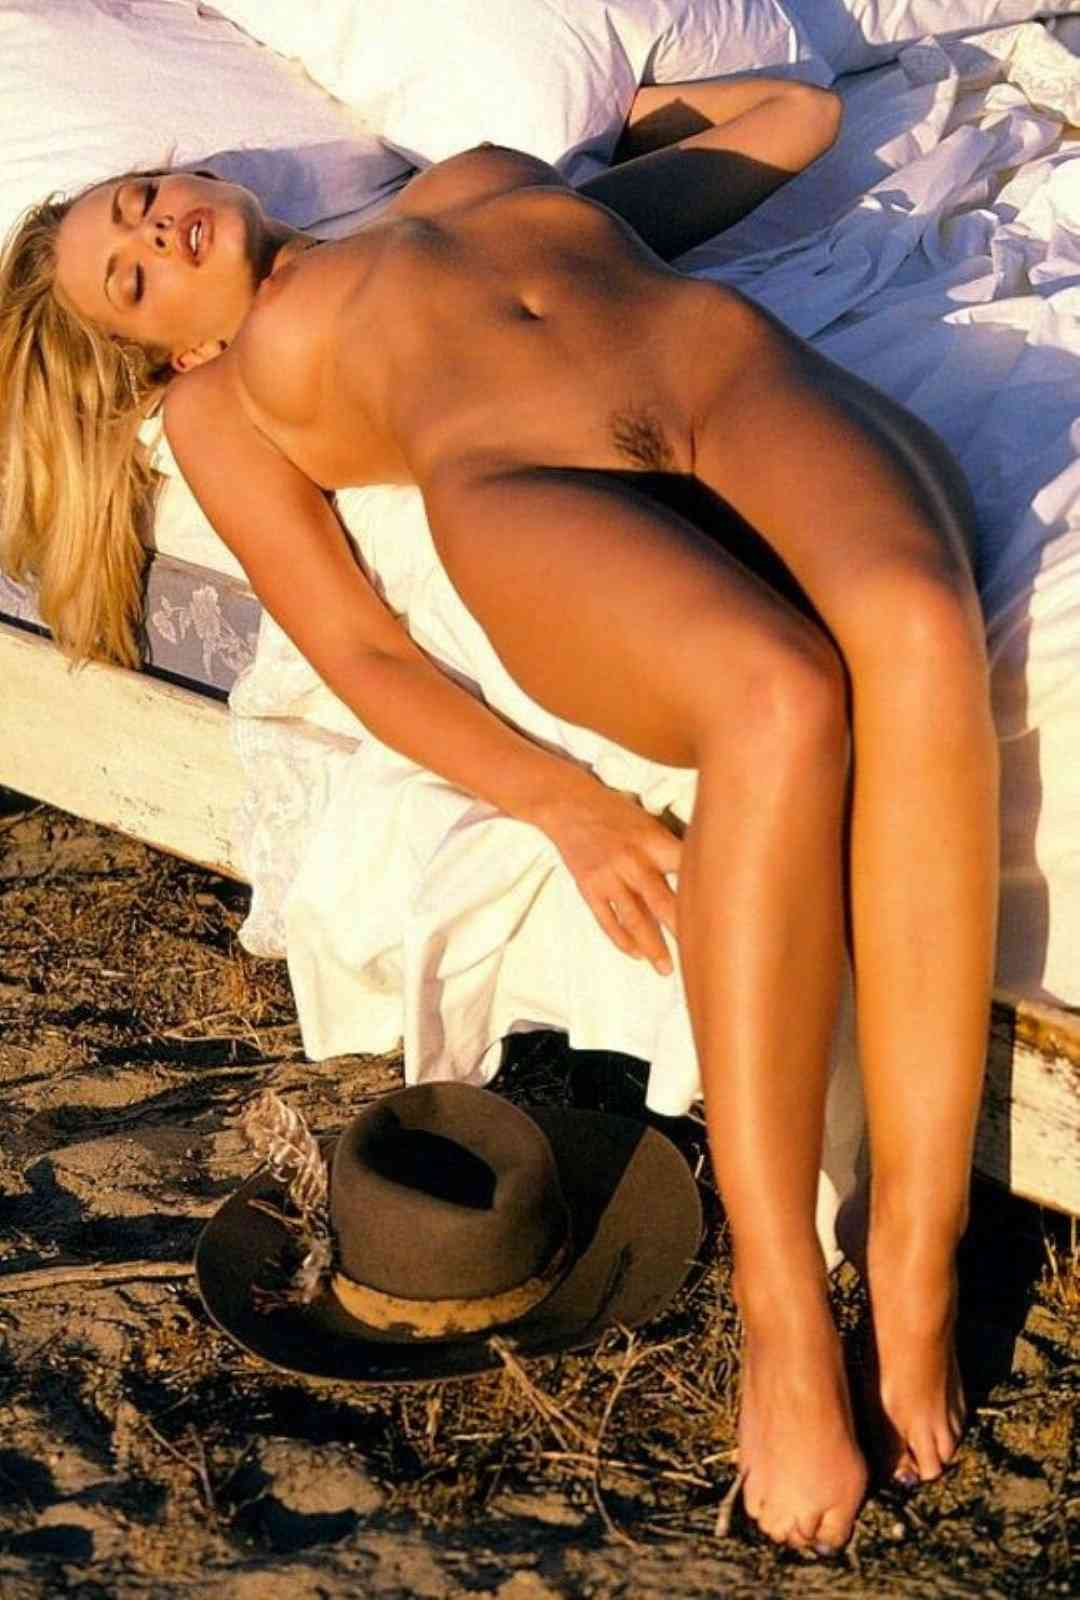 Hollywood Sexy  Nude Hd Celeb Picture Jaime Pressly Nude -3404